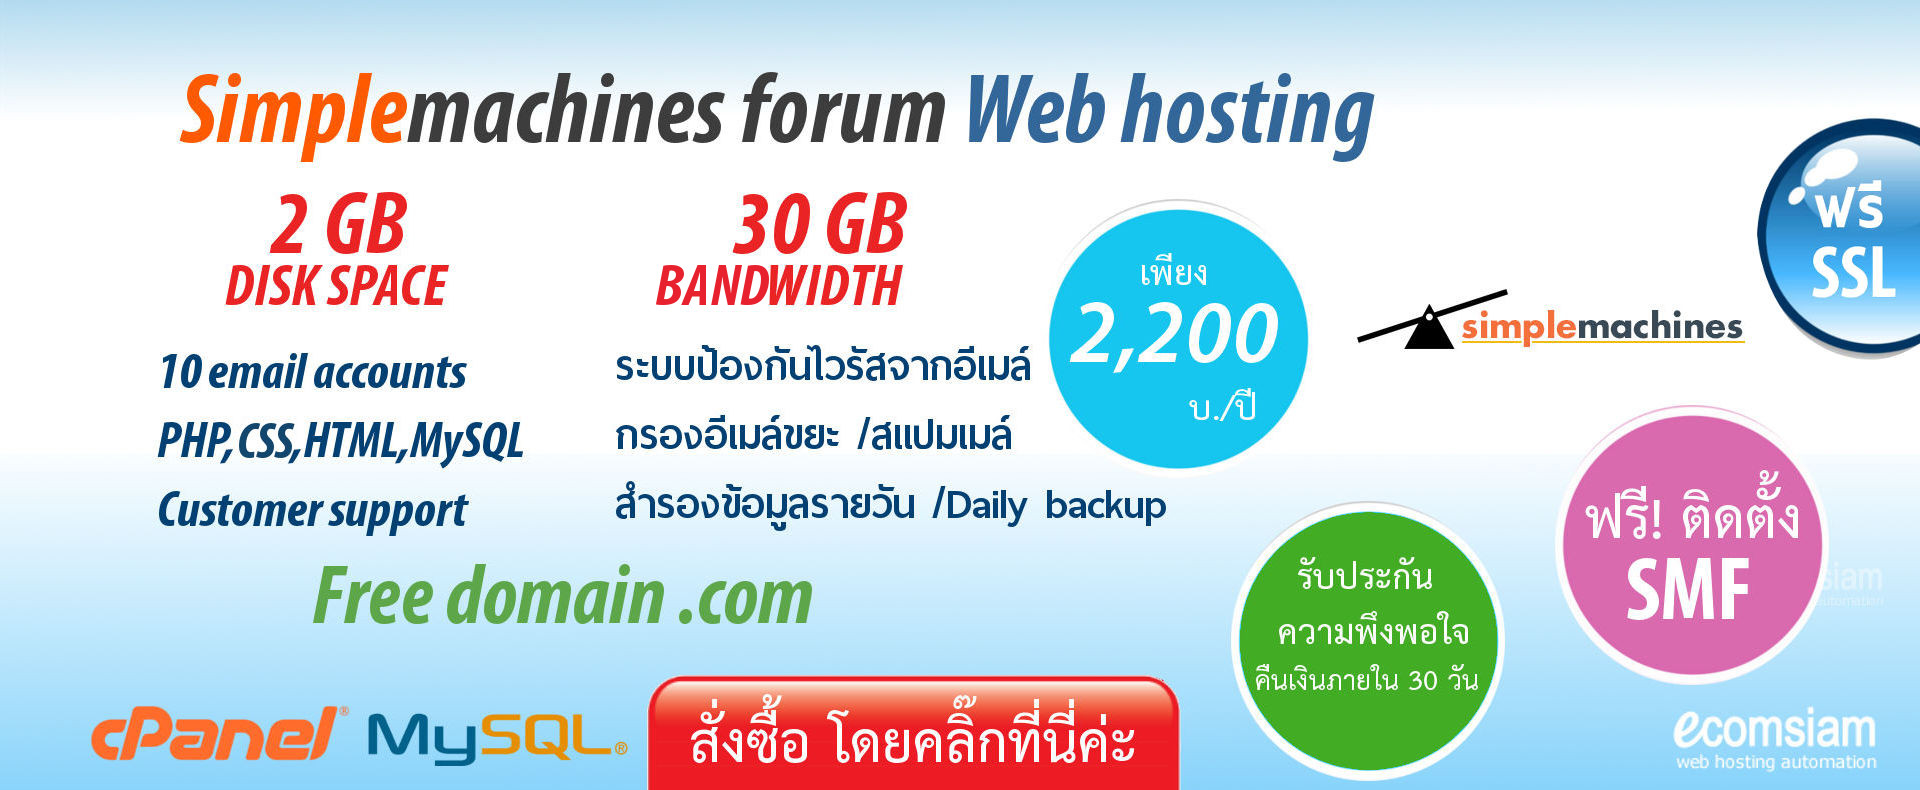 smf simple machines forum webhostingthailand เว็บโฮสติ้งไทย